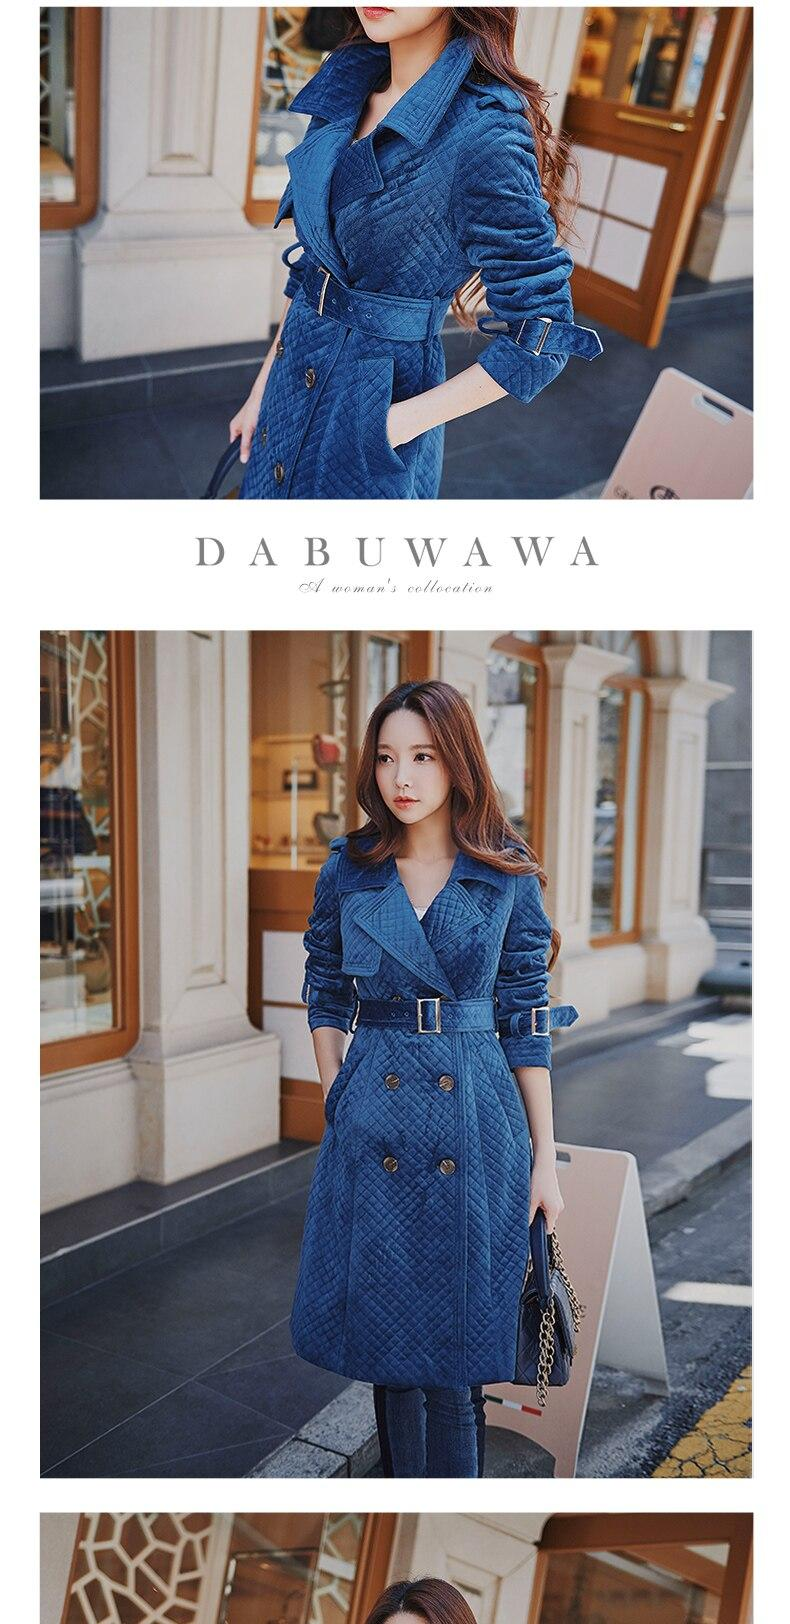 Dabuwawa Mulheres New Elegante Magro Moto Sytle Quente Trench Blusão Double Breasted Long Coat Outwear D18Ctc022